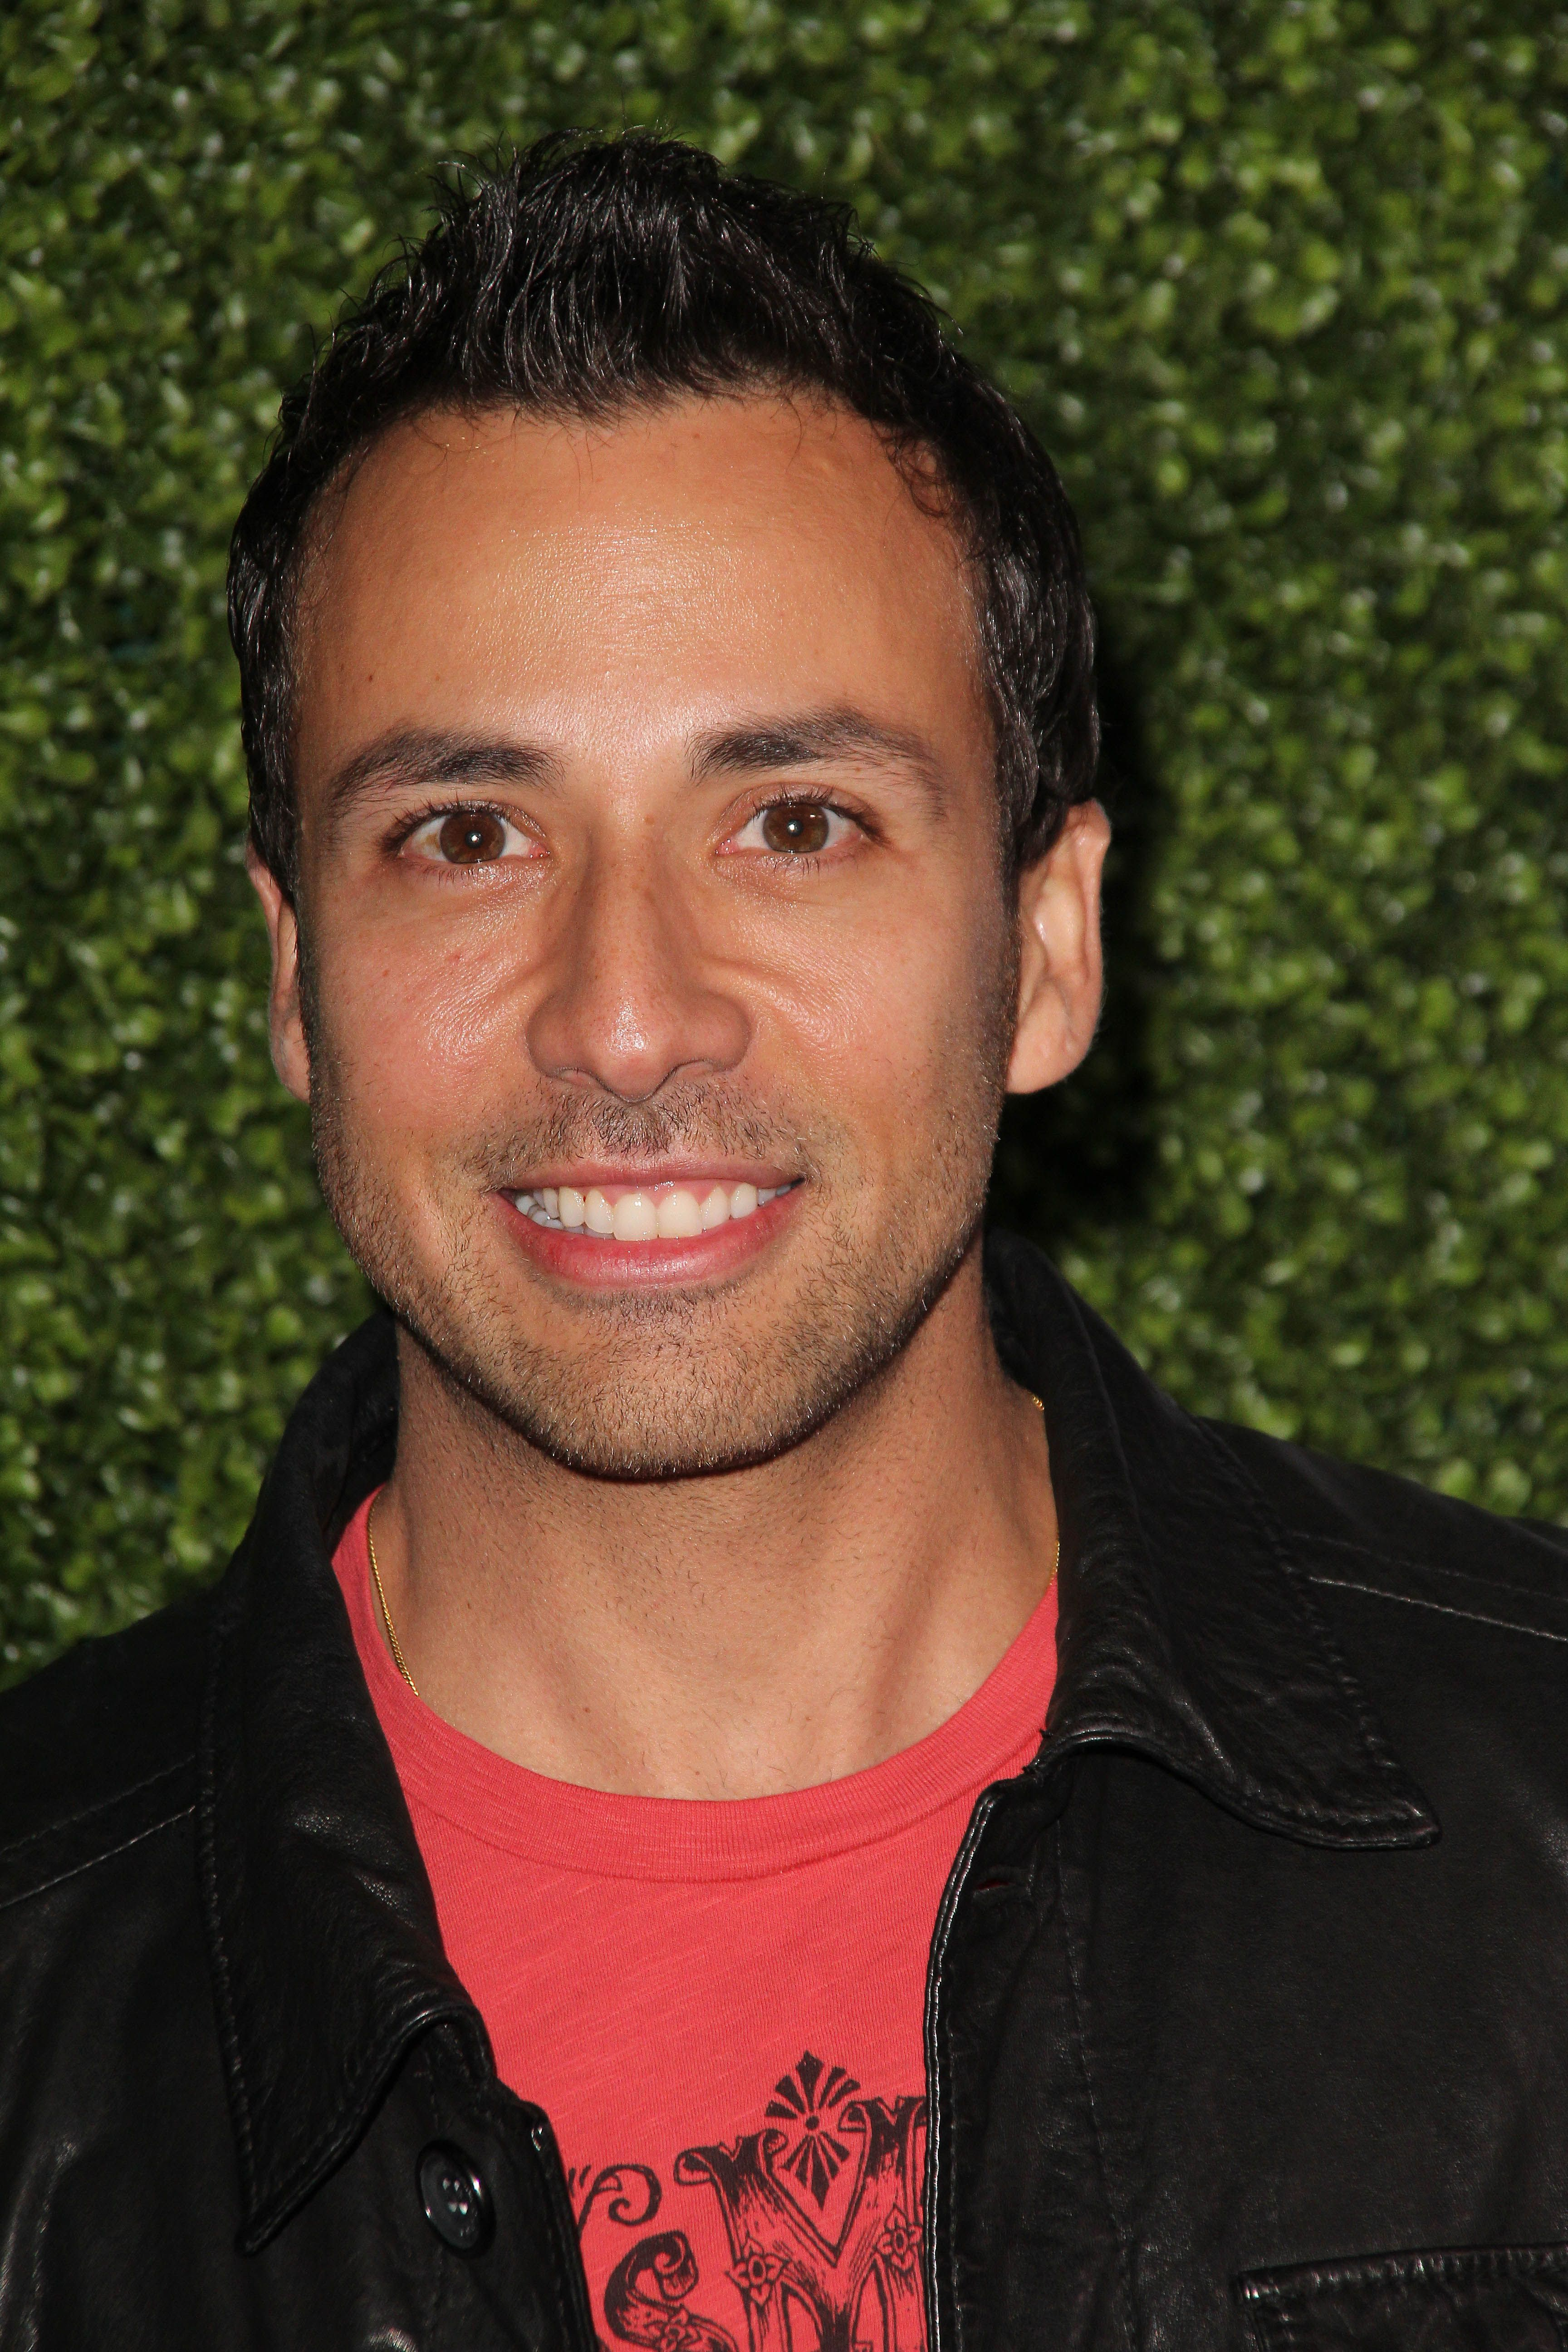 Howie dorough google search shut up howard for Howie at home